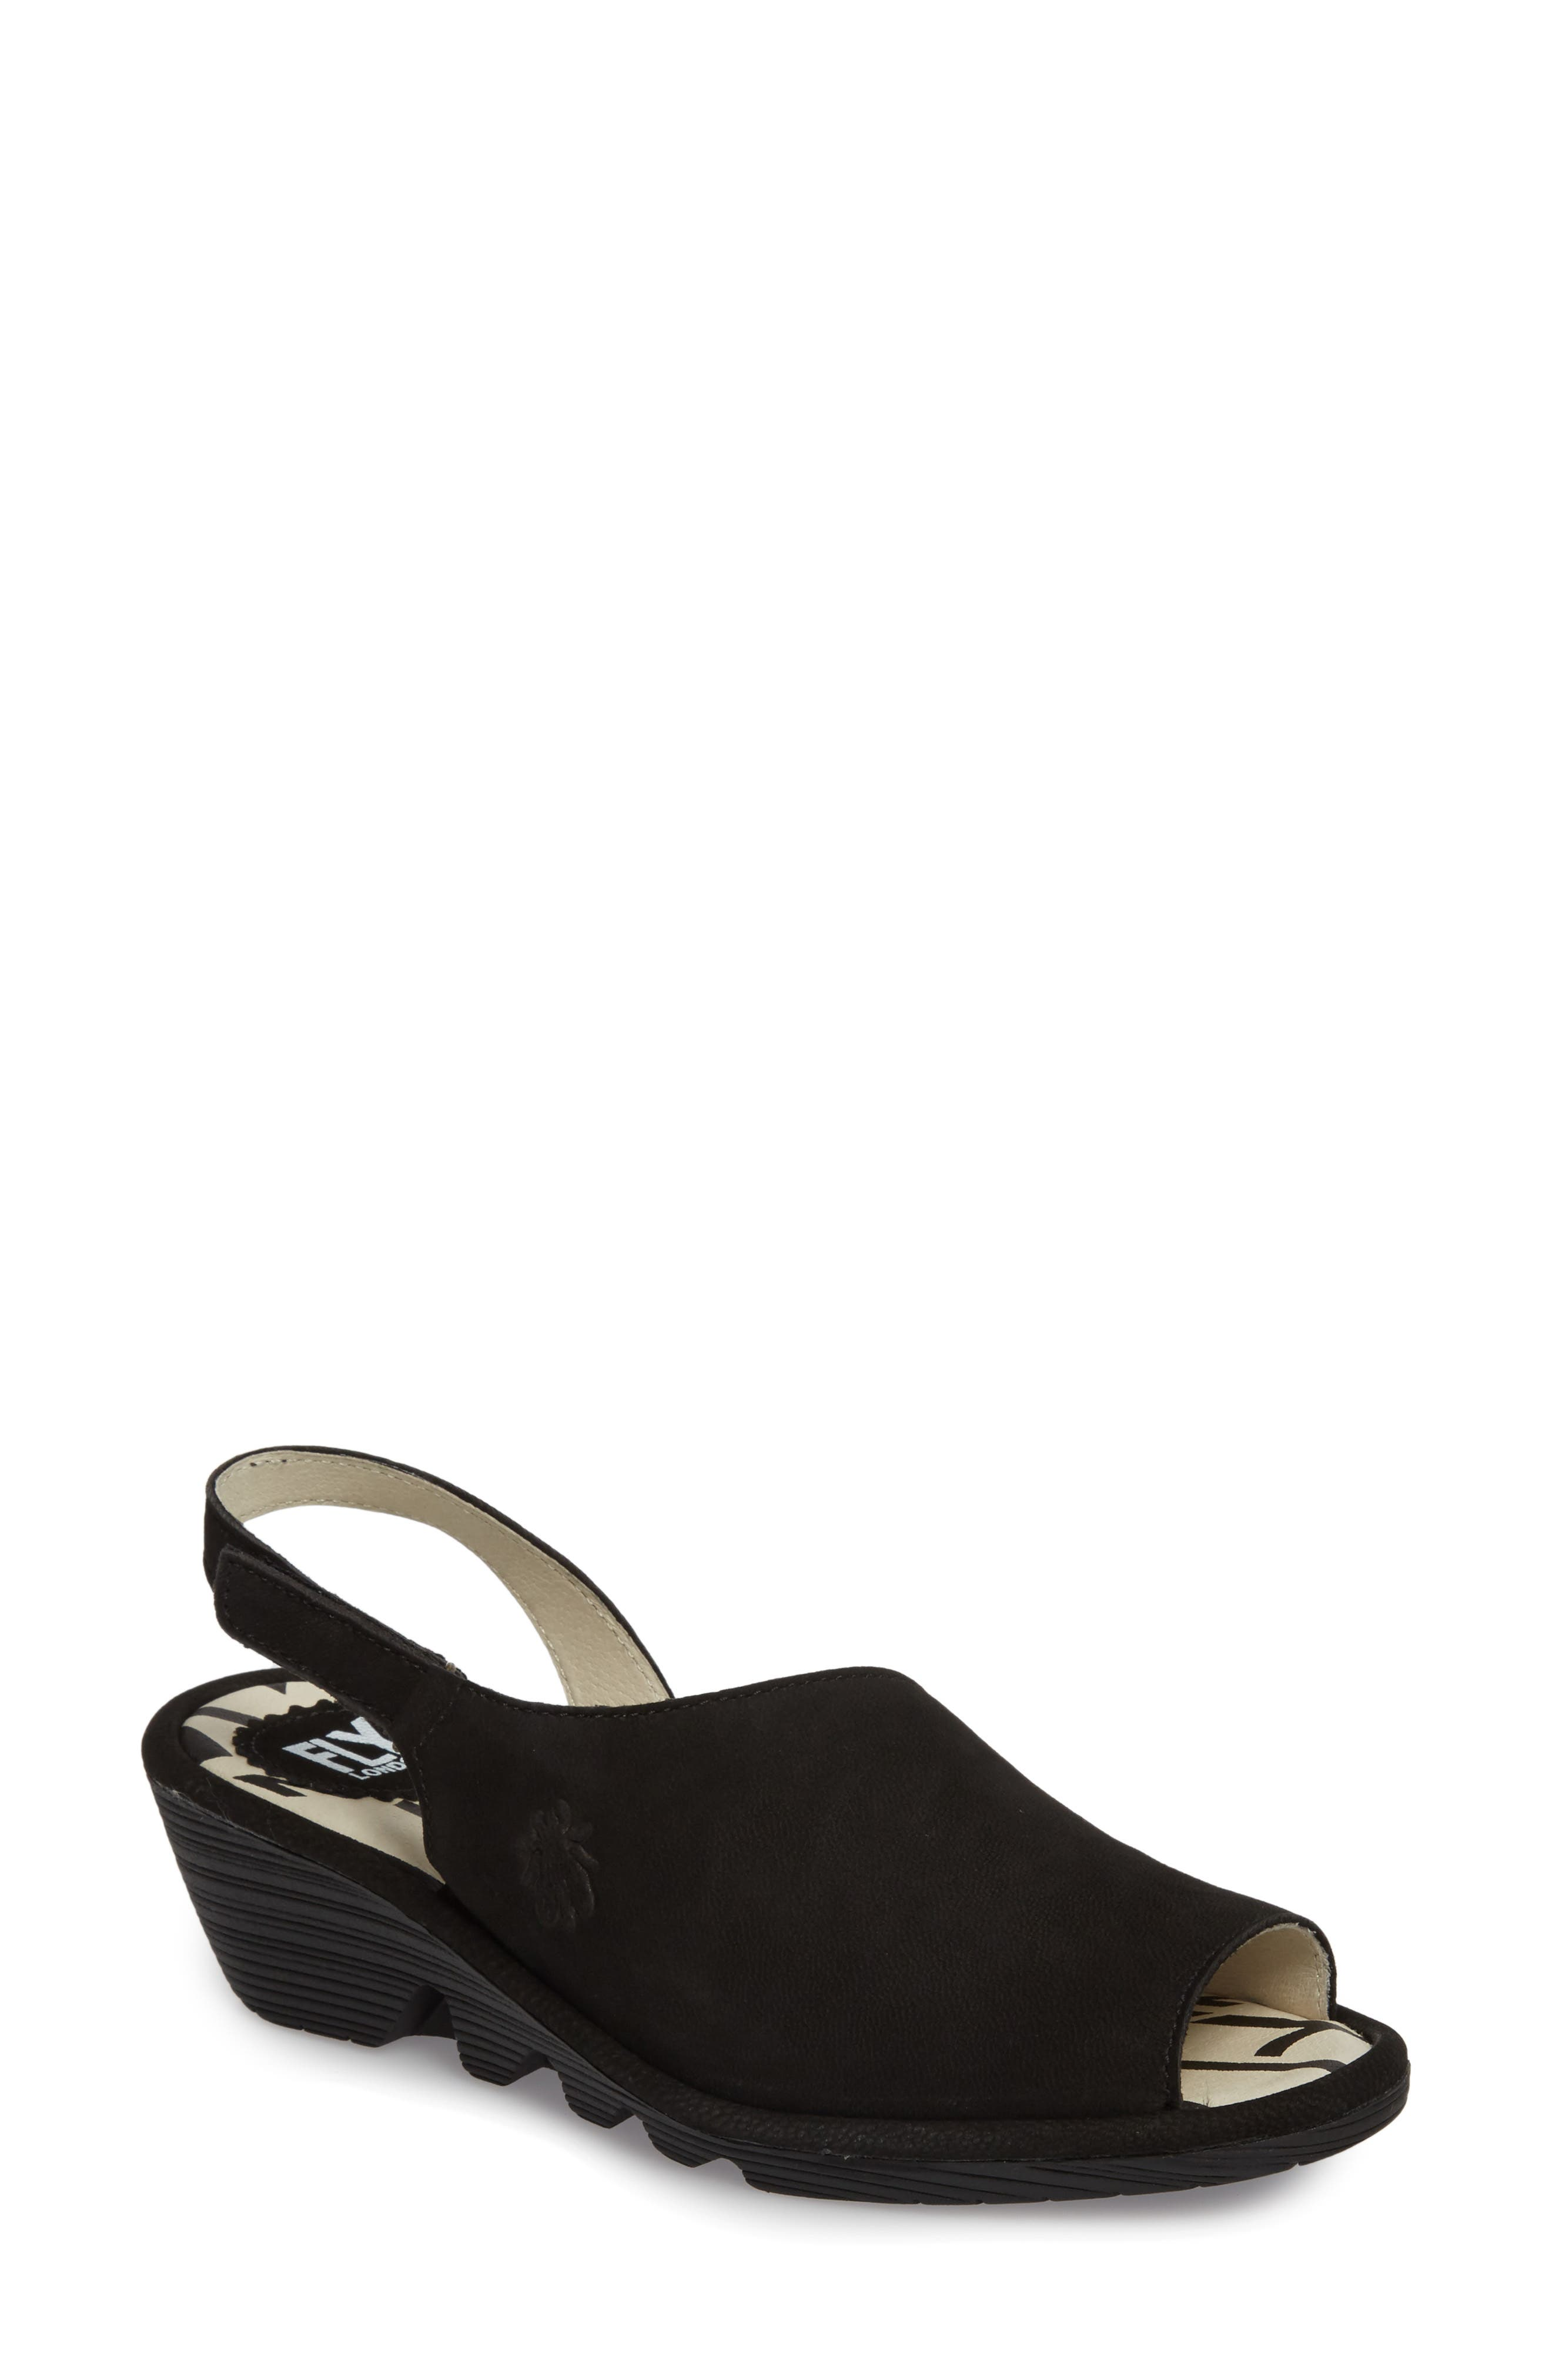 FLY LONDON, Palp Wedge Sandal, Main thumbnail 1, color, BLACK CUPIDO LEATHER